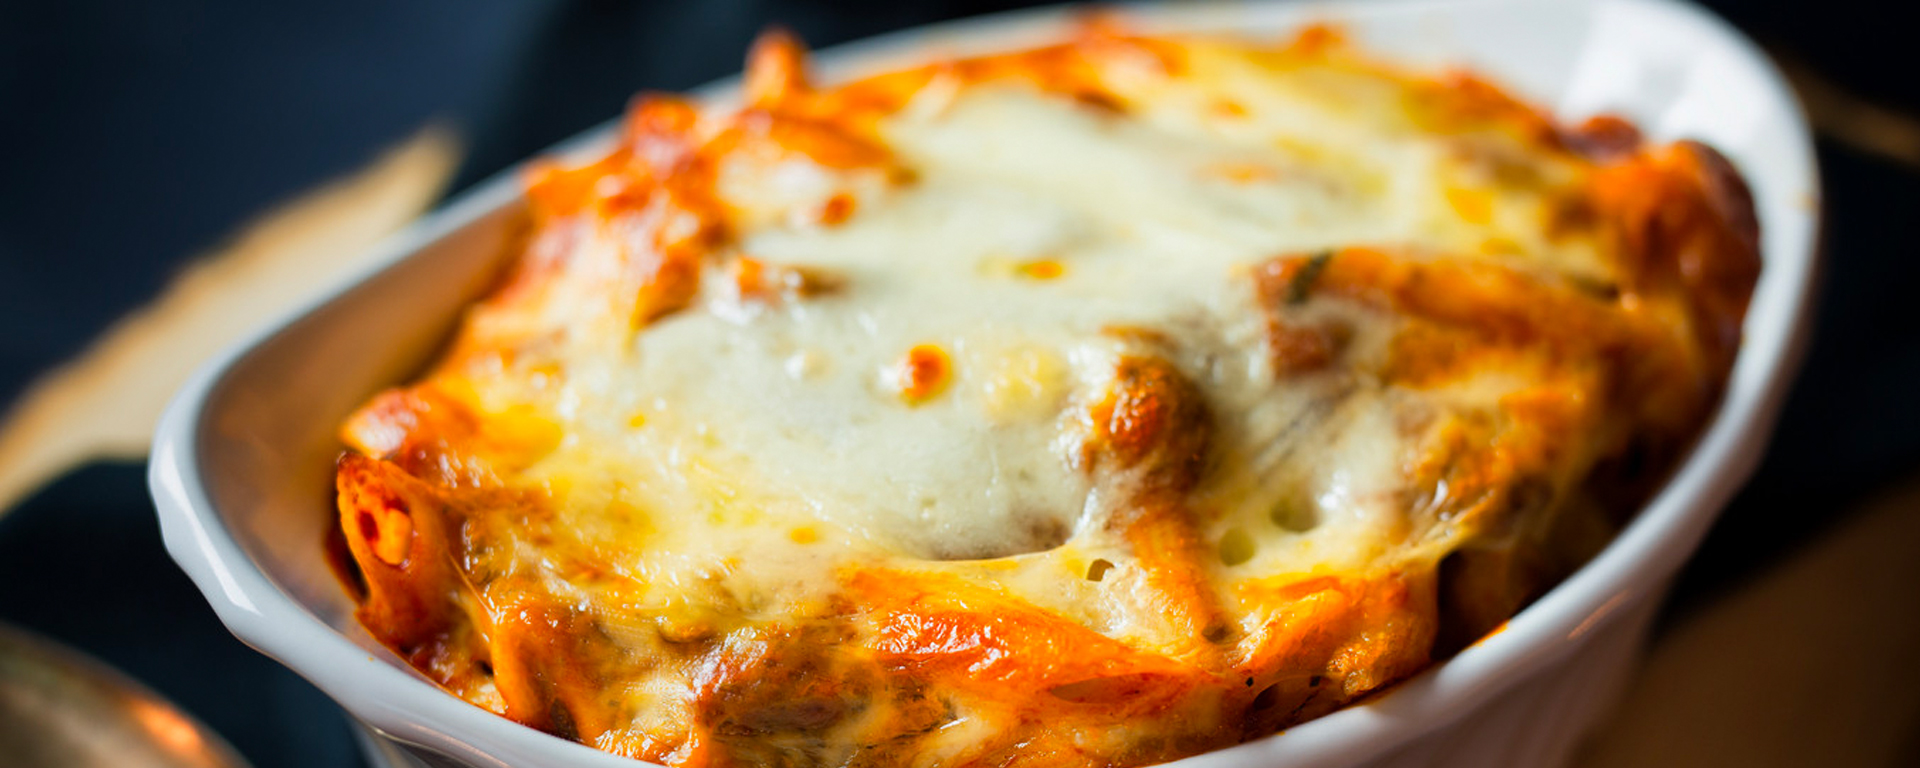 Photo for - Baked Ziti with Mushrooms and Sausage